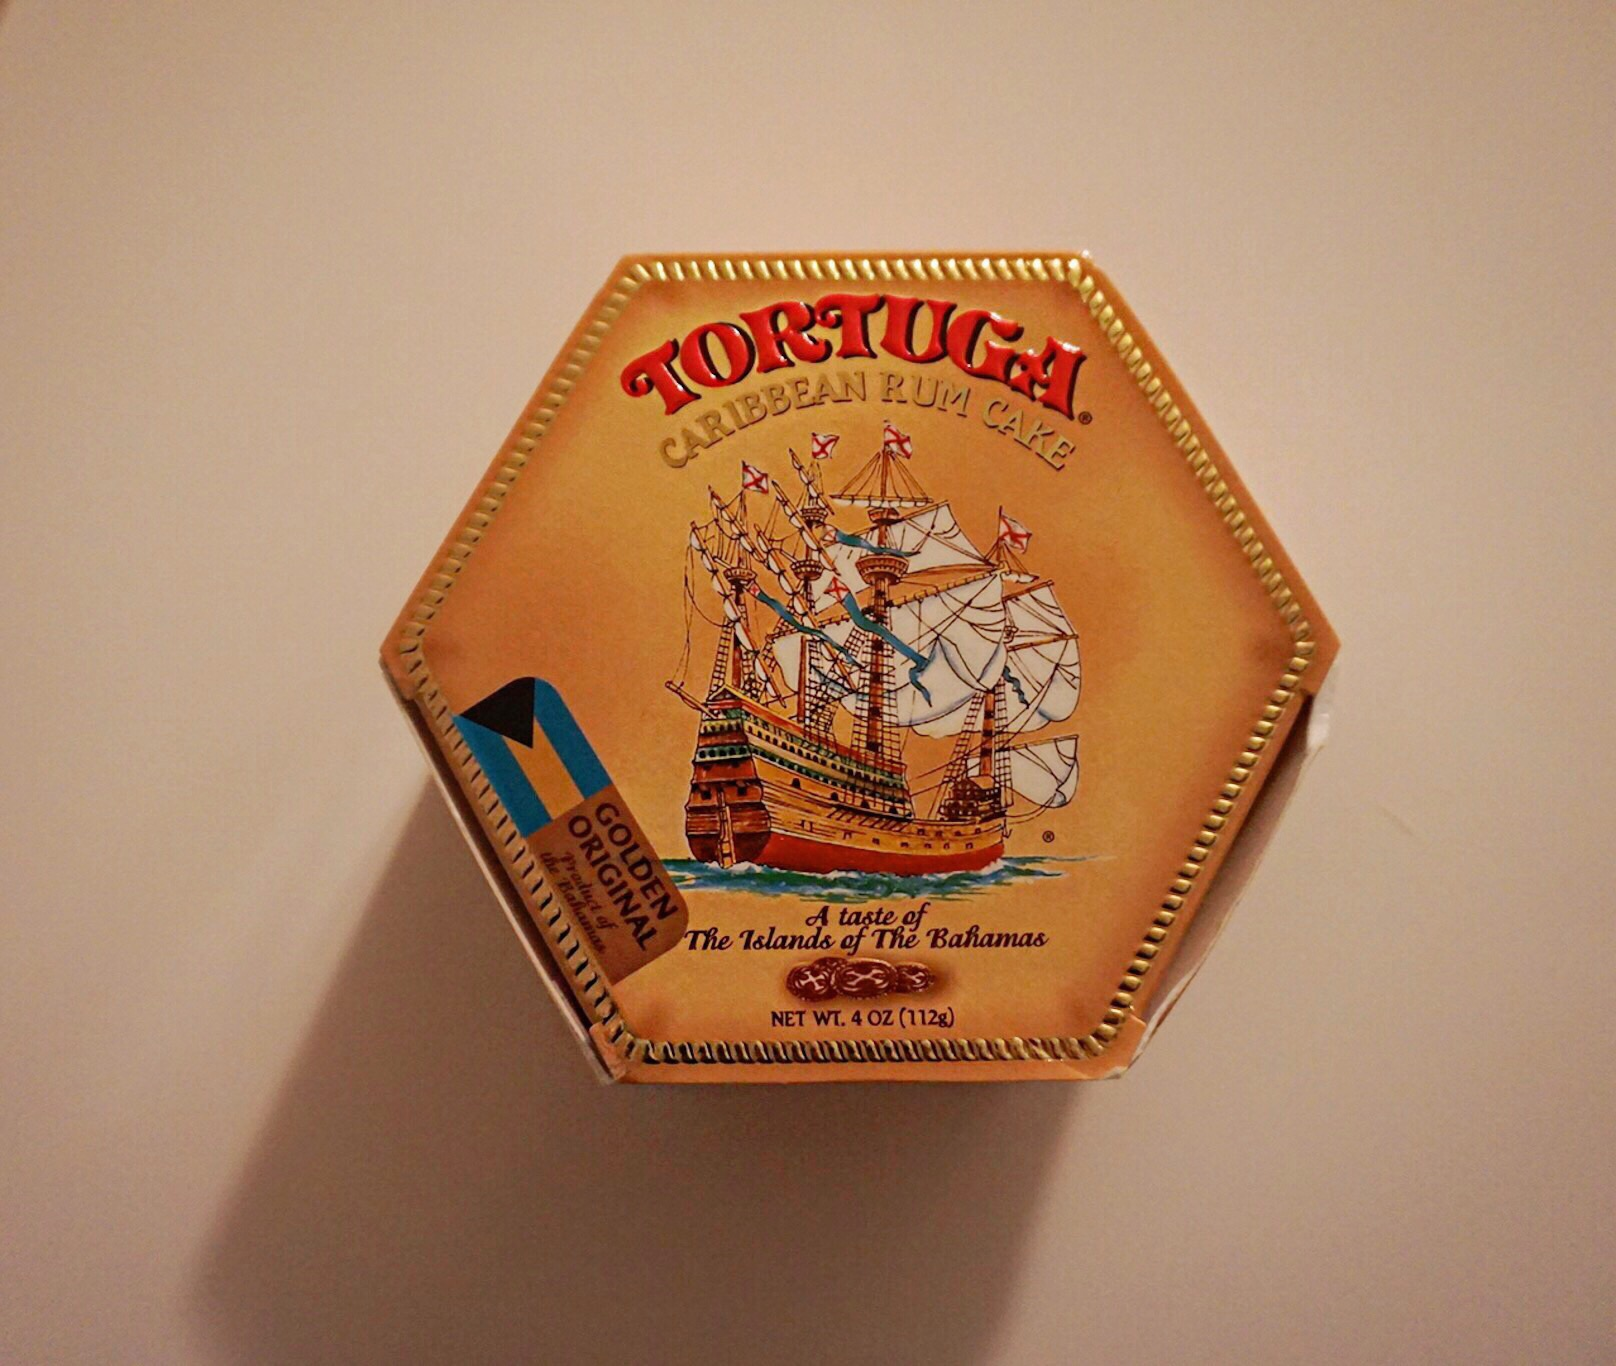 Tortuga rum cake from the Bahamas